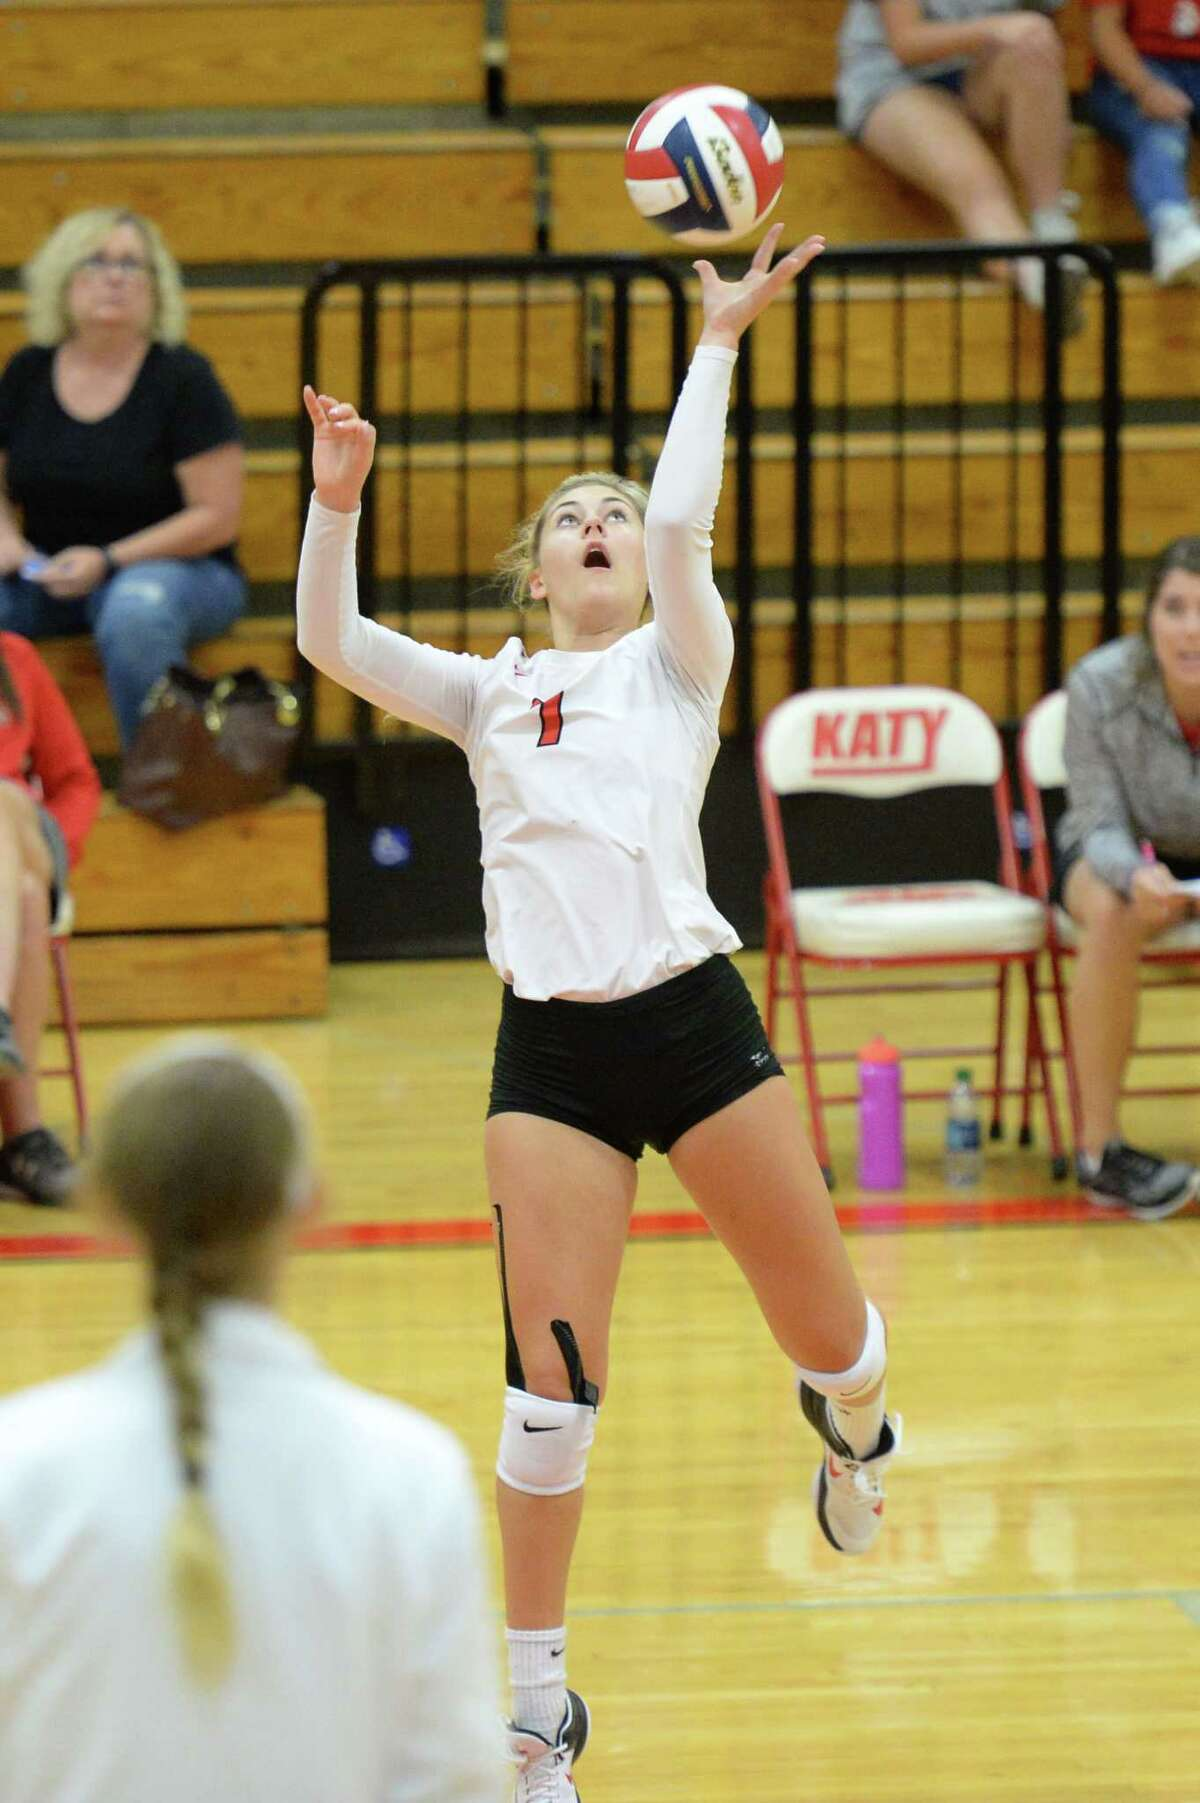 Autumn Gentry (7) of Katy tips a ball over the net in the first set of a high school volleyball game between the Katy Tigers and the Travis Tigers during the 2017 Cy-Fair ISD/Katy ISD Classic on August 10, 2017 at Katy High School, Katy, TX.